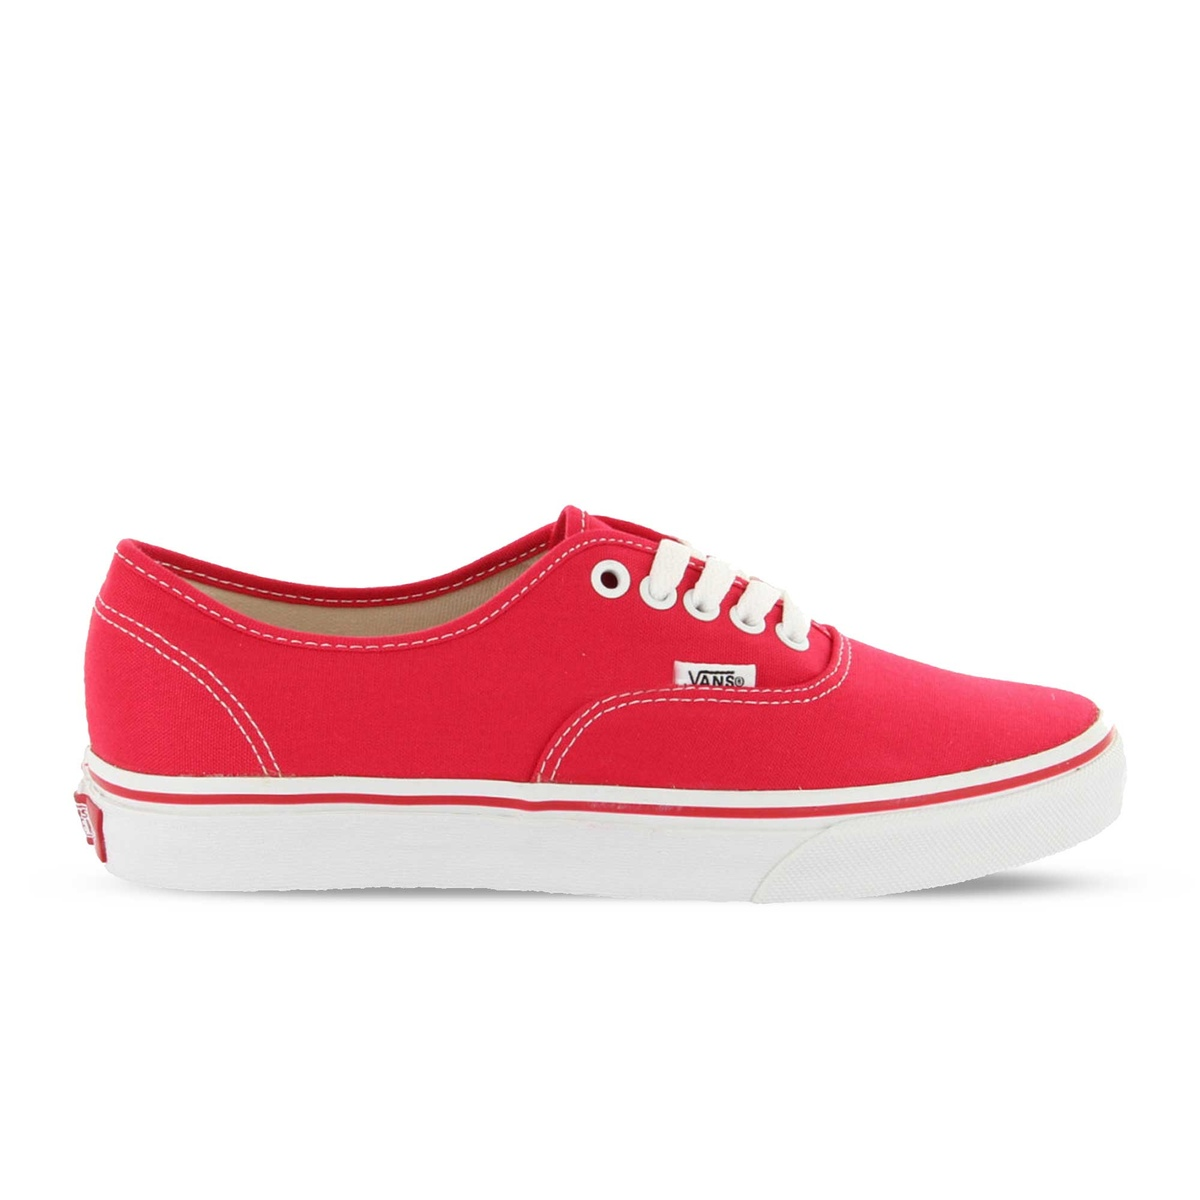 AUTHENTIC rosse